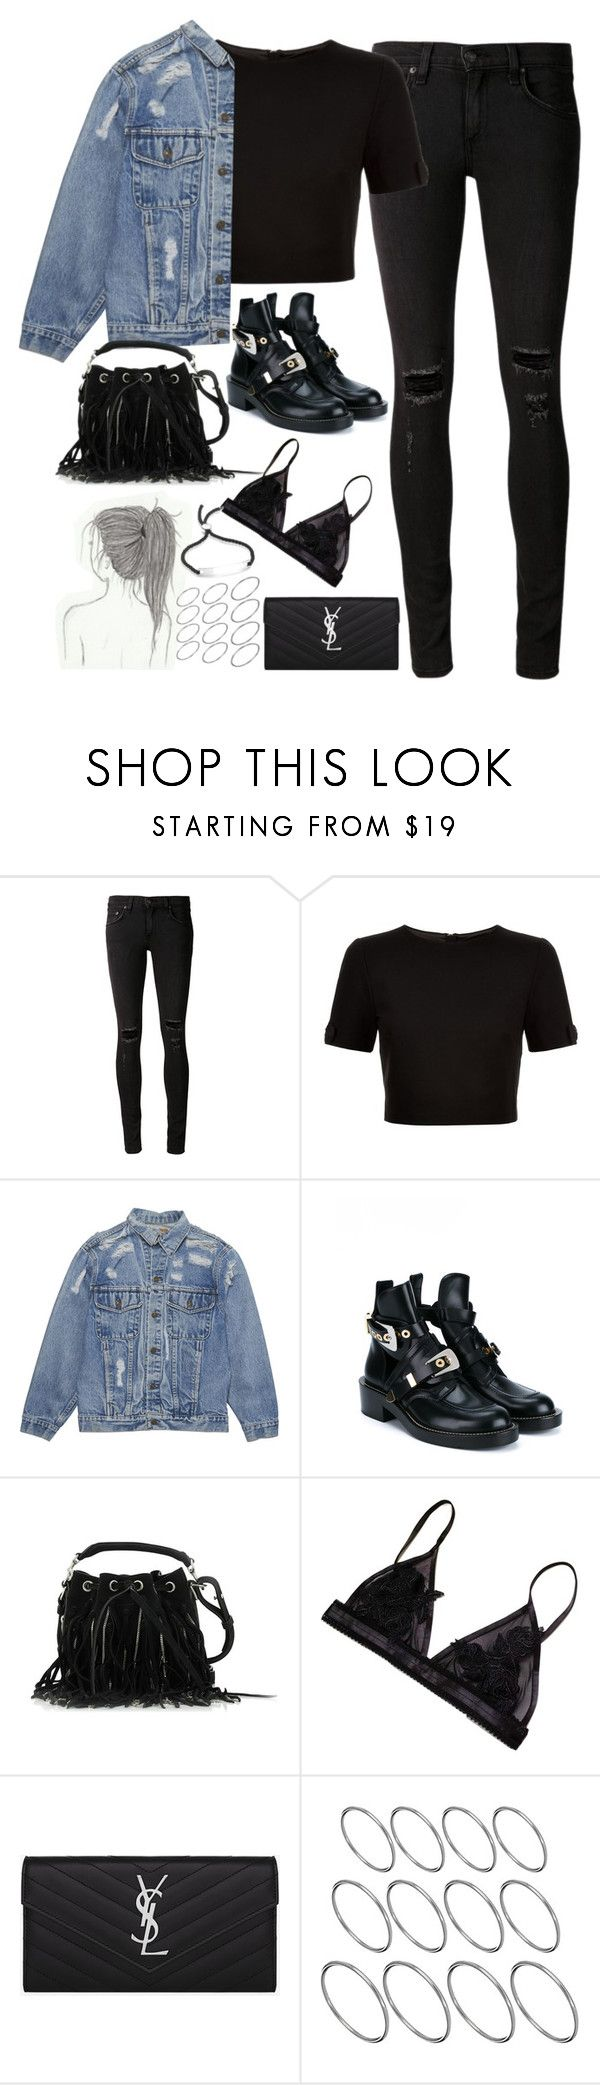 """""""Untitled#4628"""" by fashionnfacts ❤ liked on Polyvore featuring rag & bone/JEAN, Ted Baker, Balenciaga, Yves Saint Laurent, ASOS and Monica Vinader"""